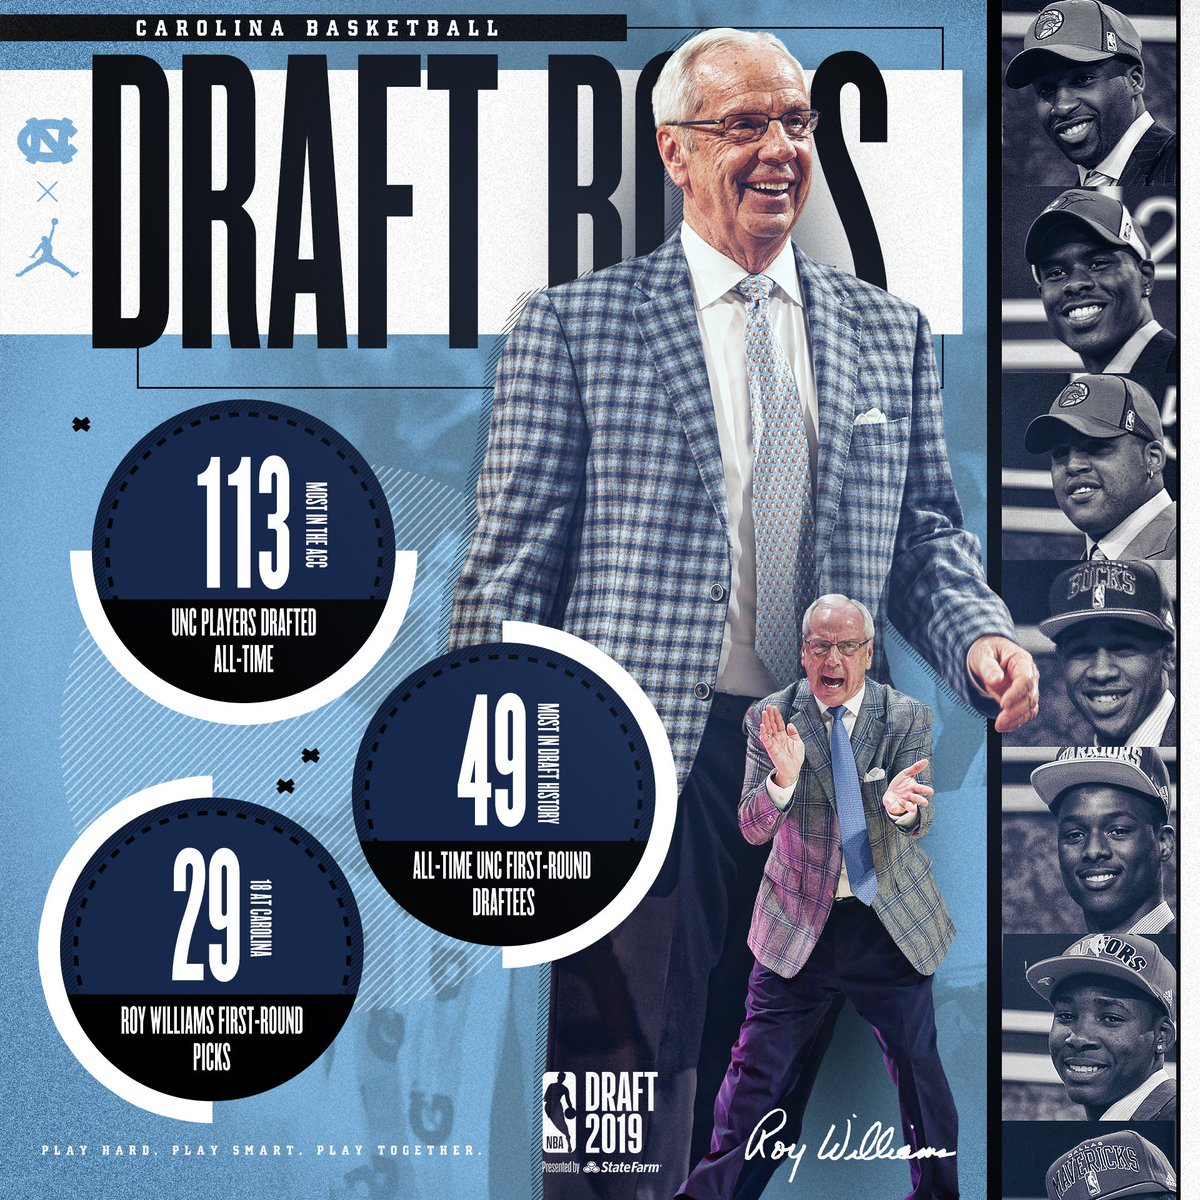 Can't wait to see that number rise   #CarolinaSZN | #NBADraft<br>http://pic.twitter.com/up8x1qjQxg